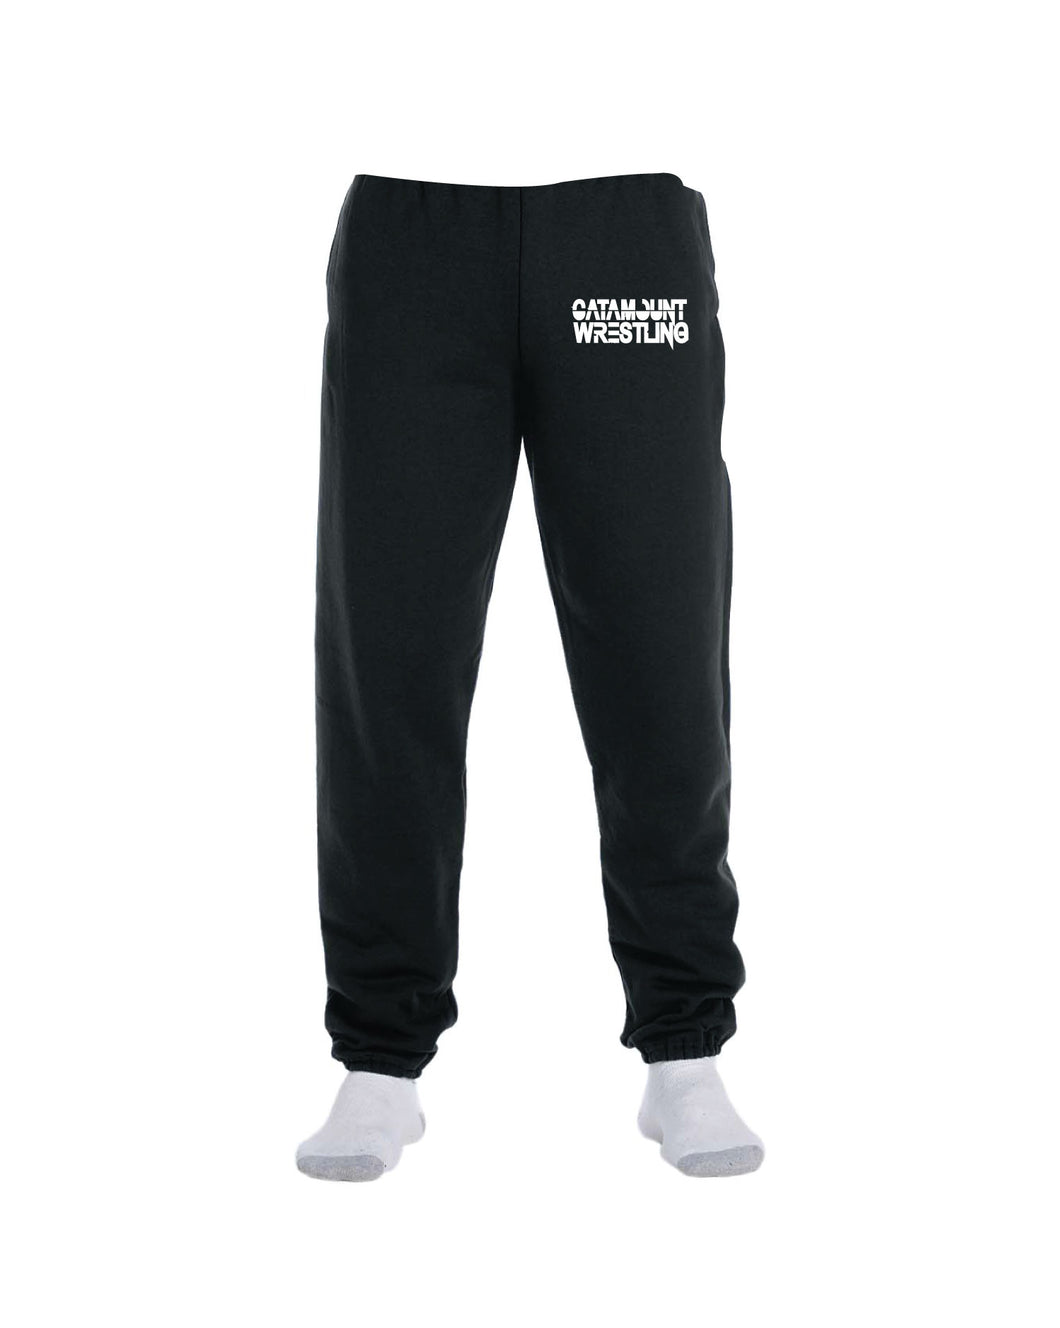 Catamount Wrestling Cotton Sweatpants - 5KounT2018